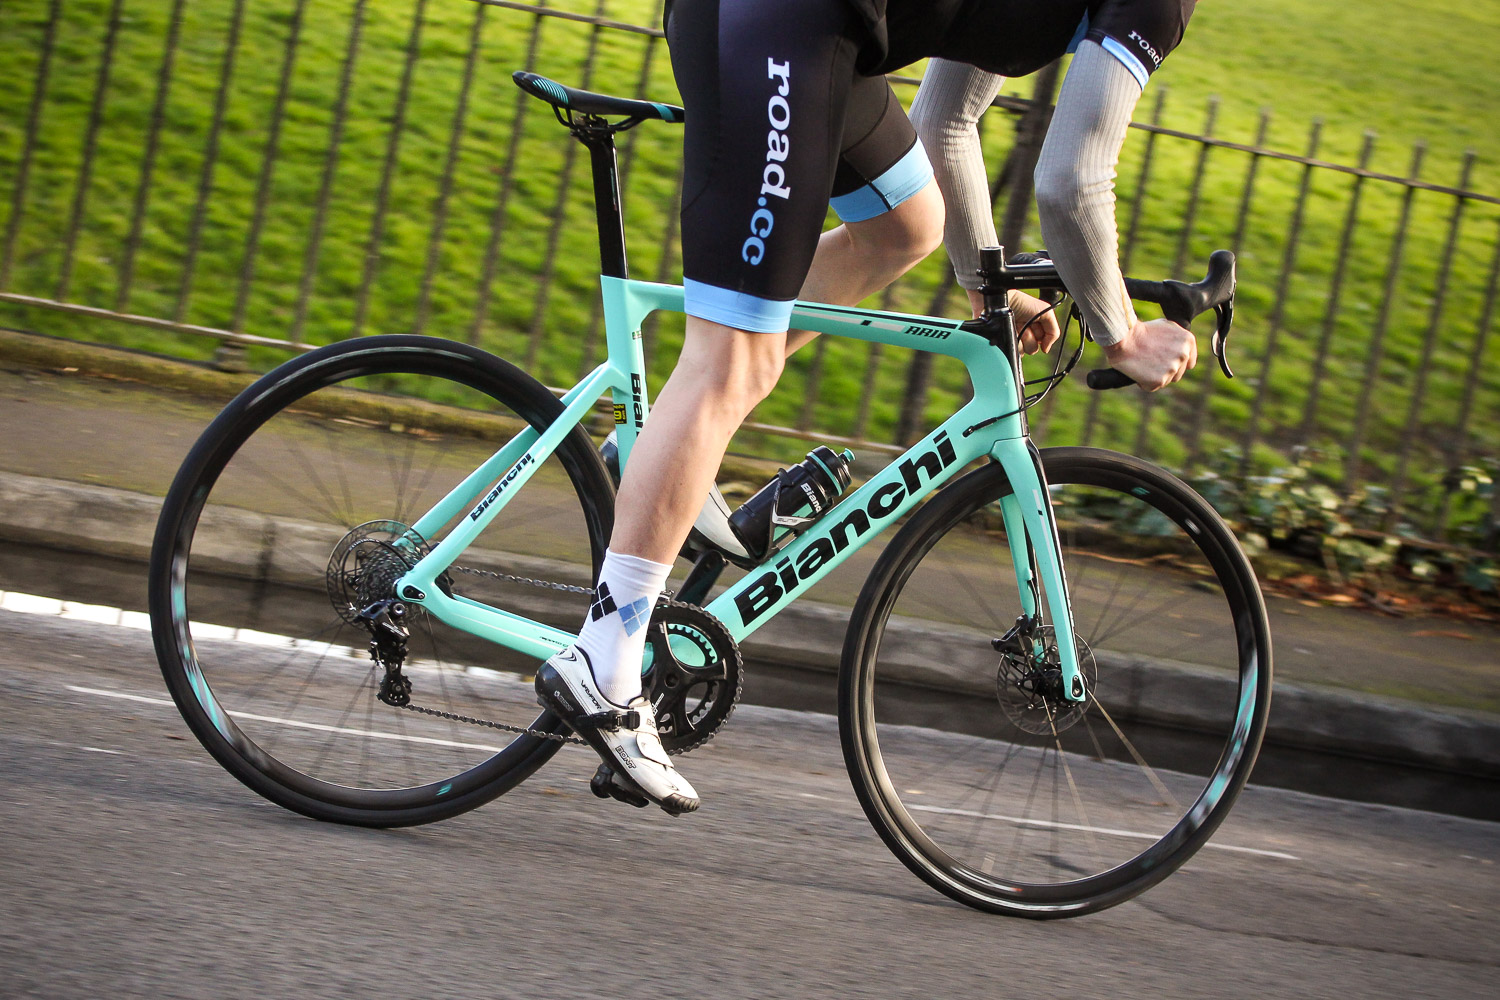 b4a70fdc Review: Bianchi Aria Disc | road.cc